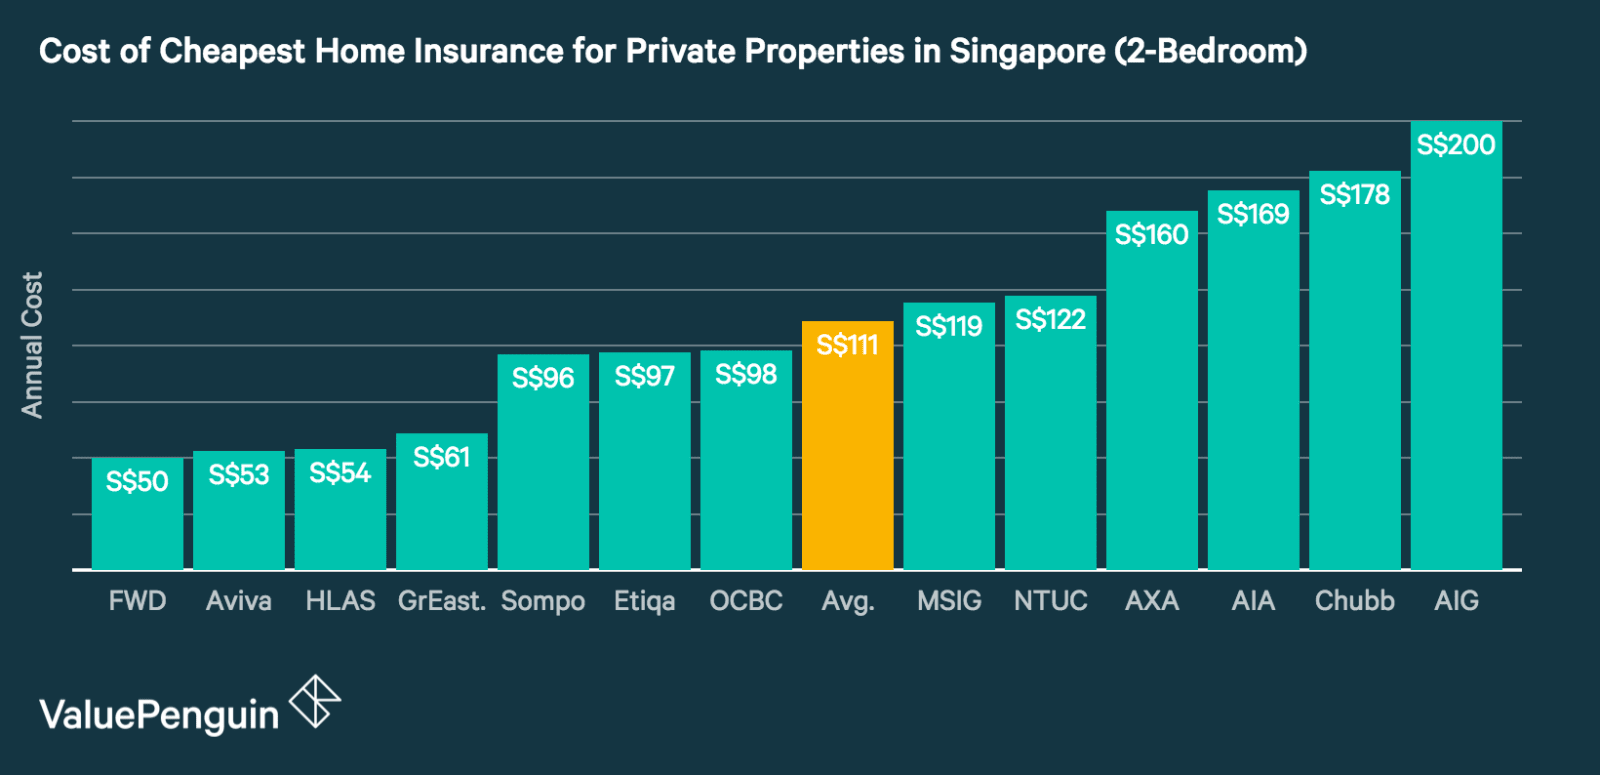 This graph compares the costs of home insurance in Singapore for a 2 bedroom flat